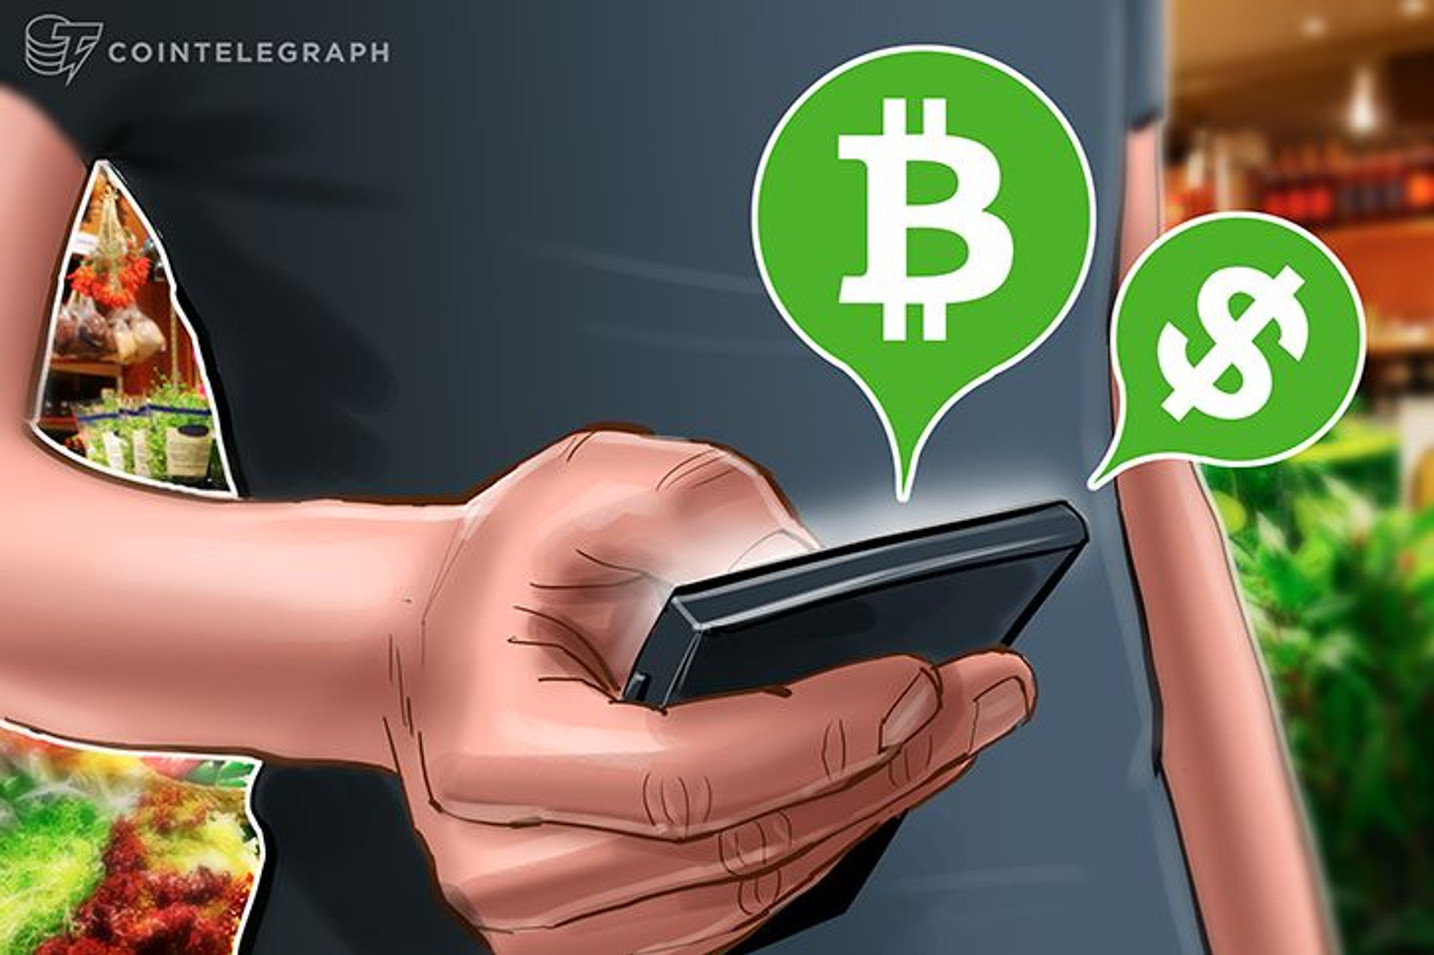 Jack Dorsey: Square Will Go Further With Bitcoin Than Buy/Sell Option